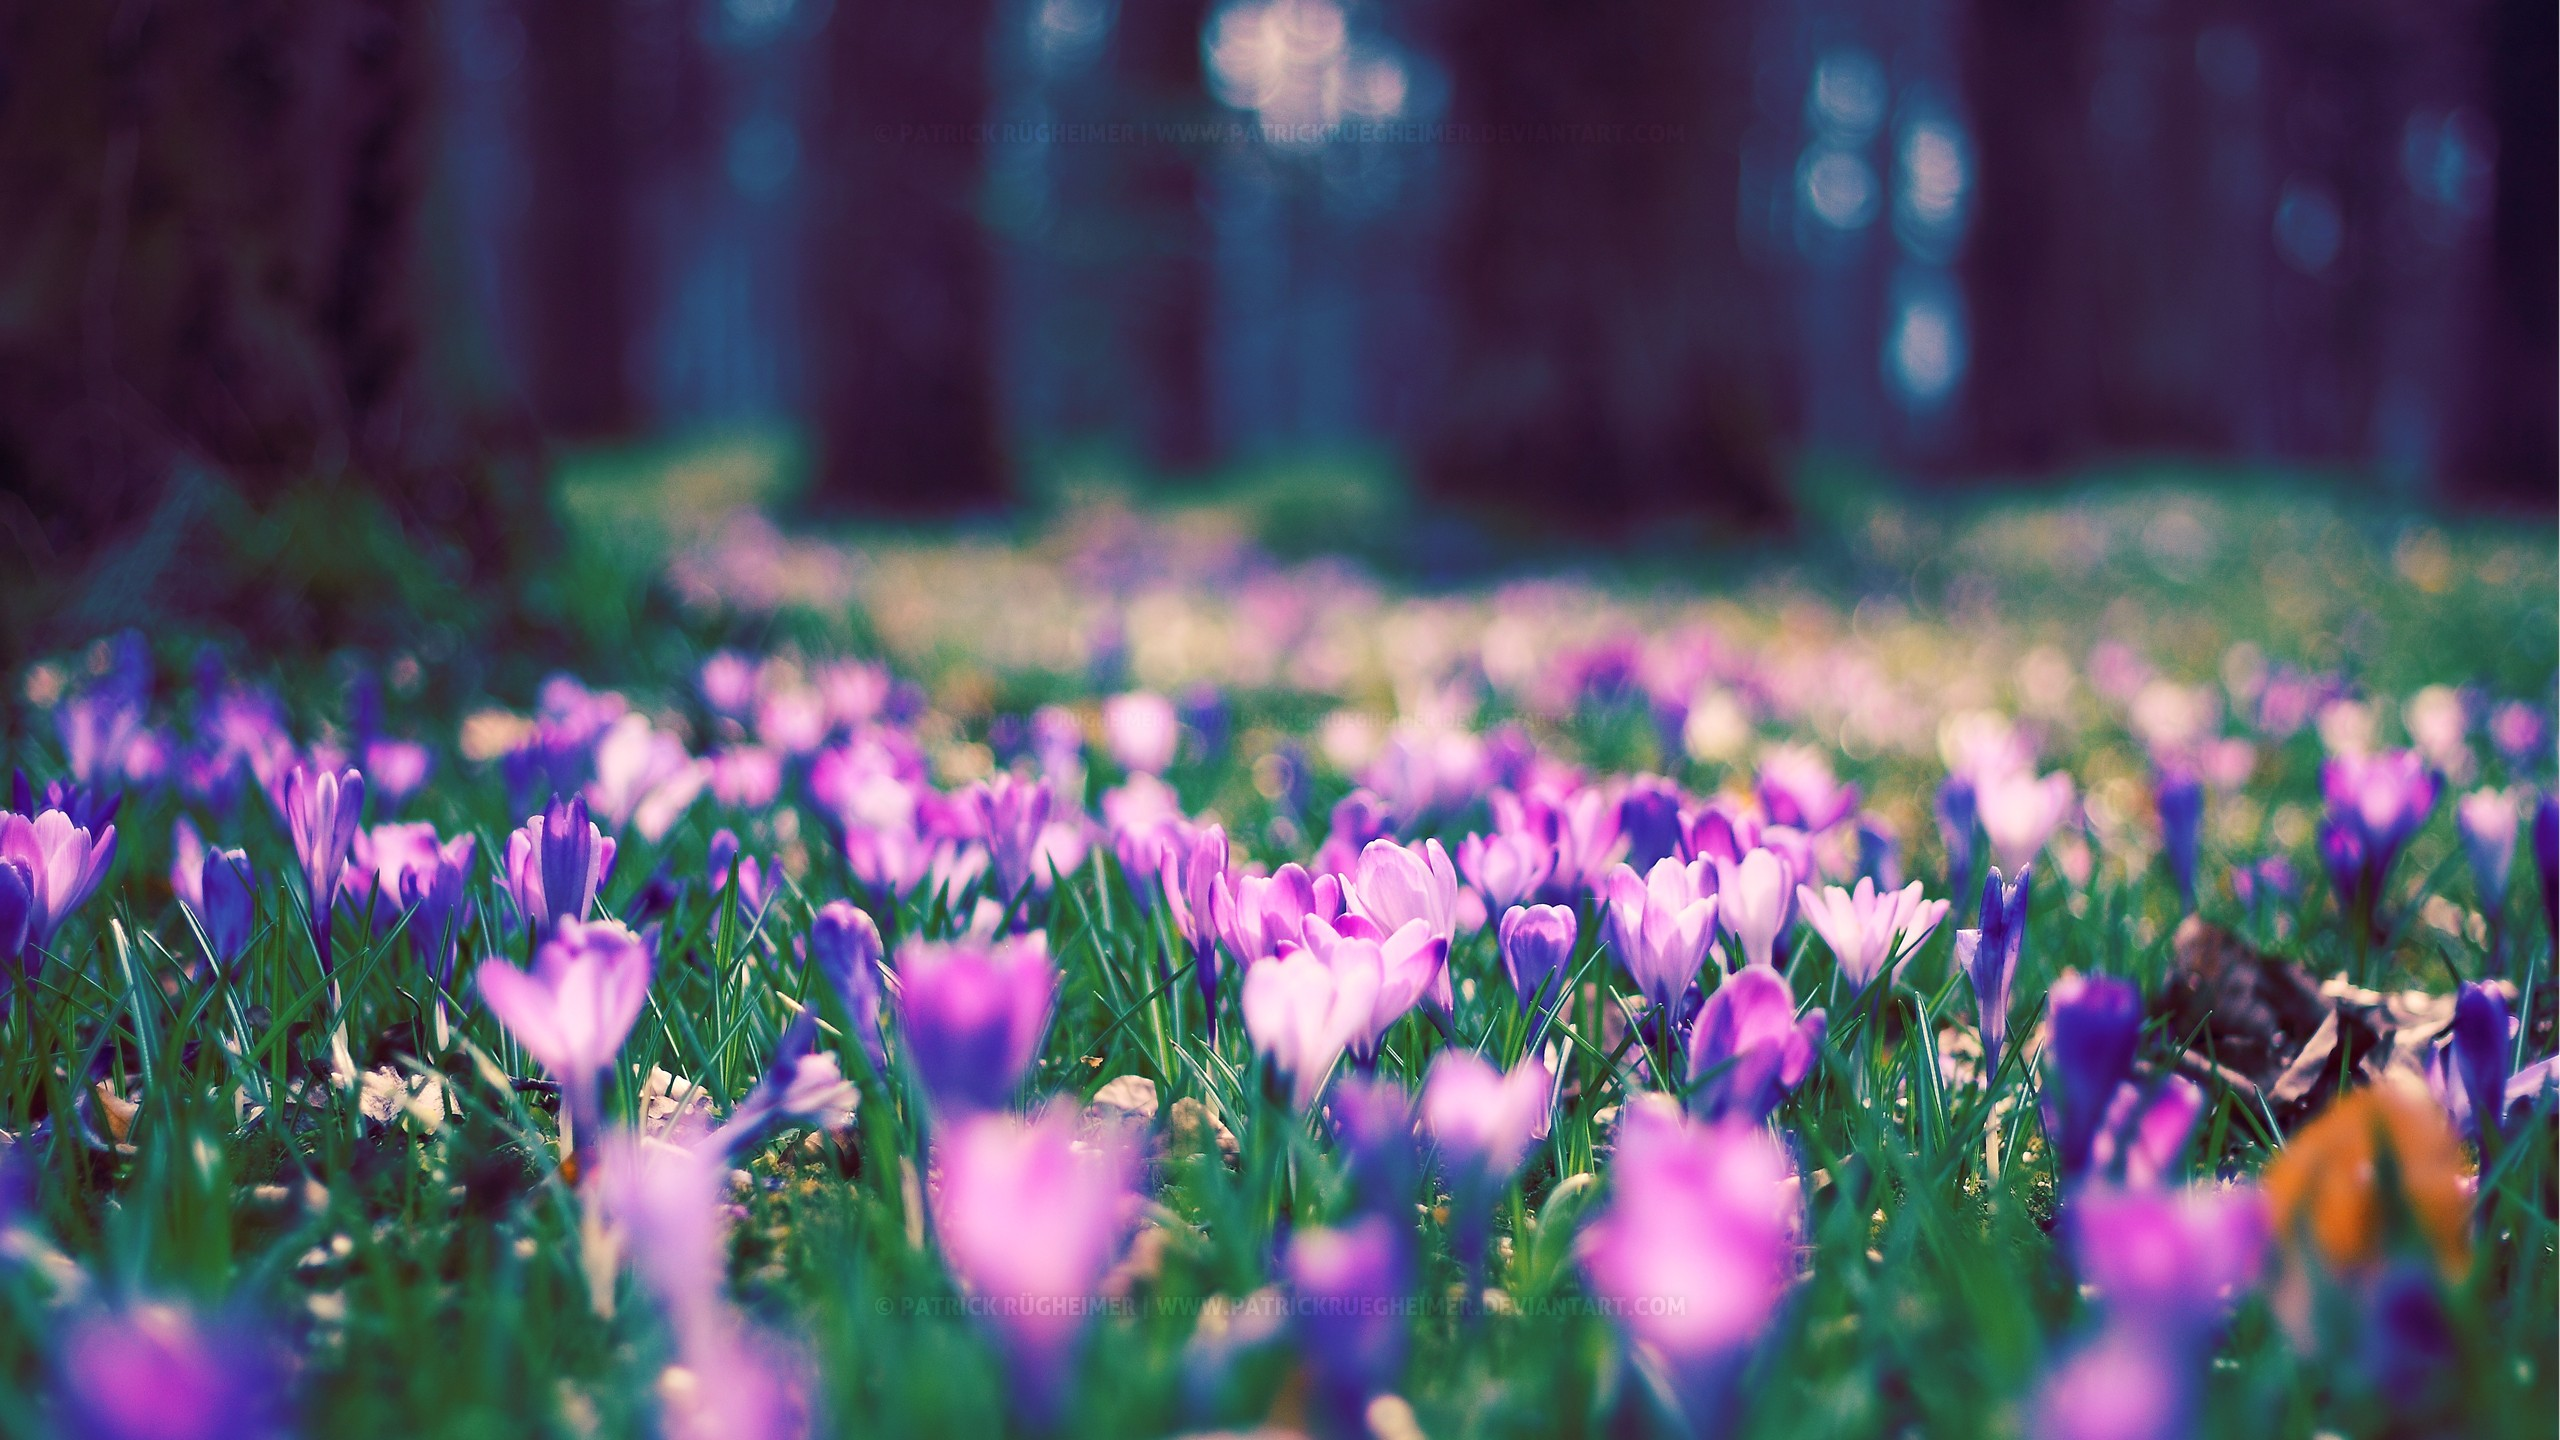 Wallpaper Blurry Iphone X Spring Flower Park Wallpapers Hd Wallpapers Id 12434